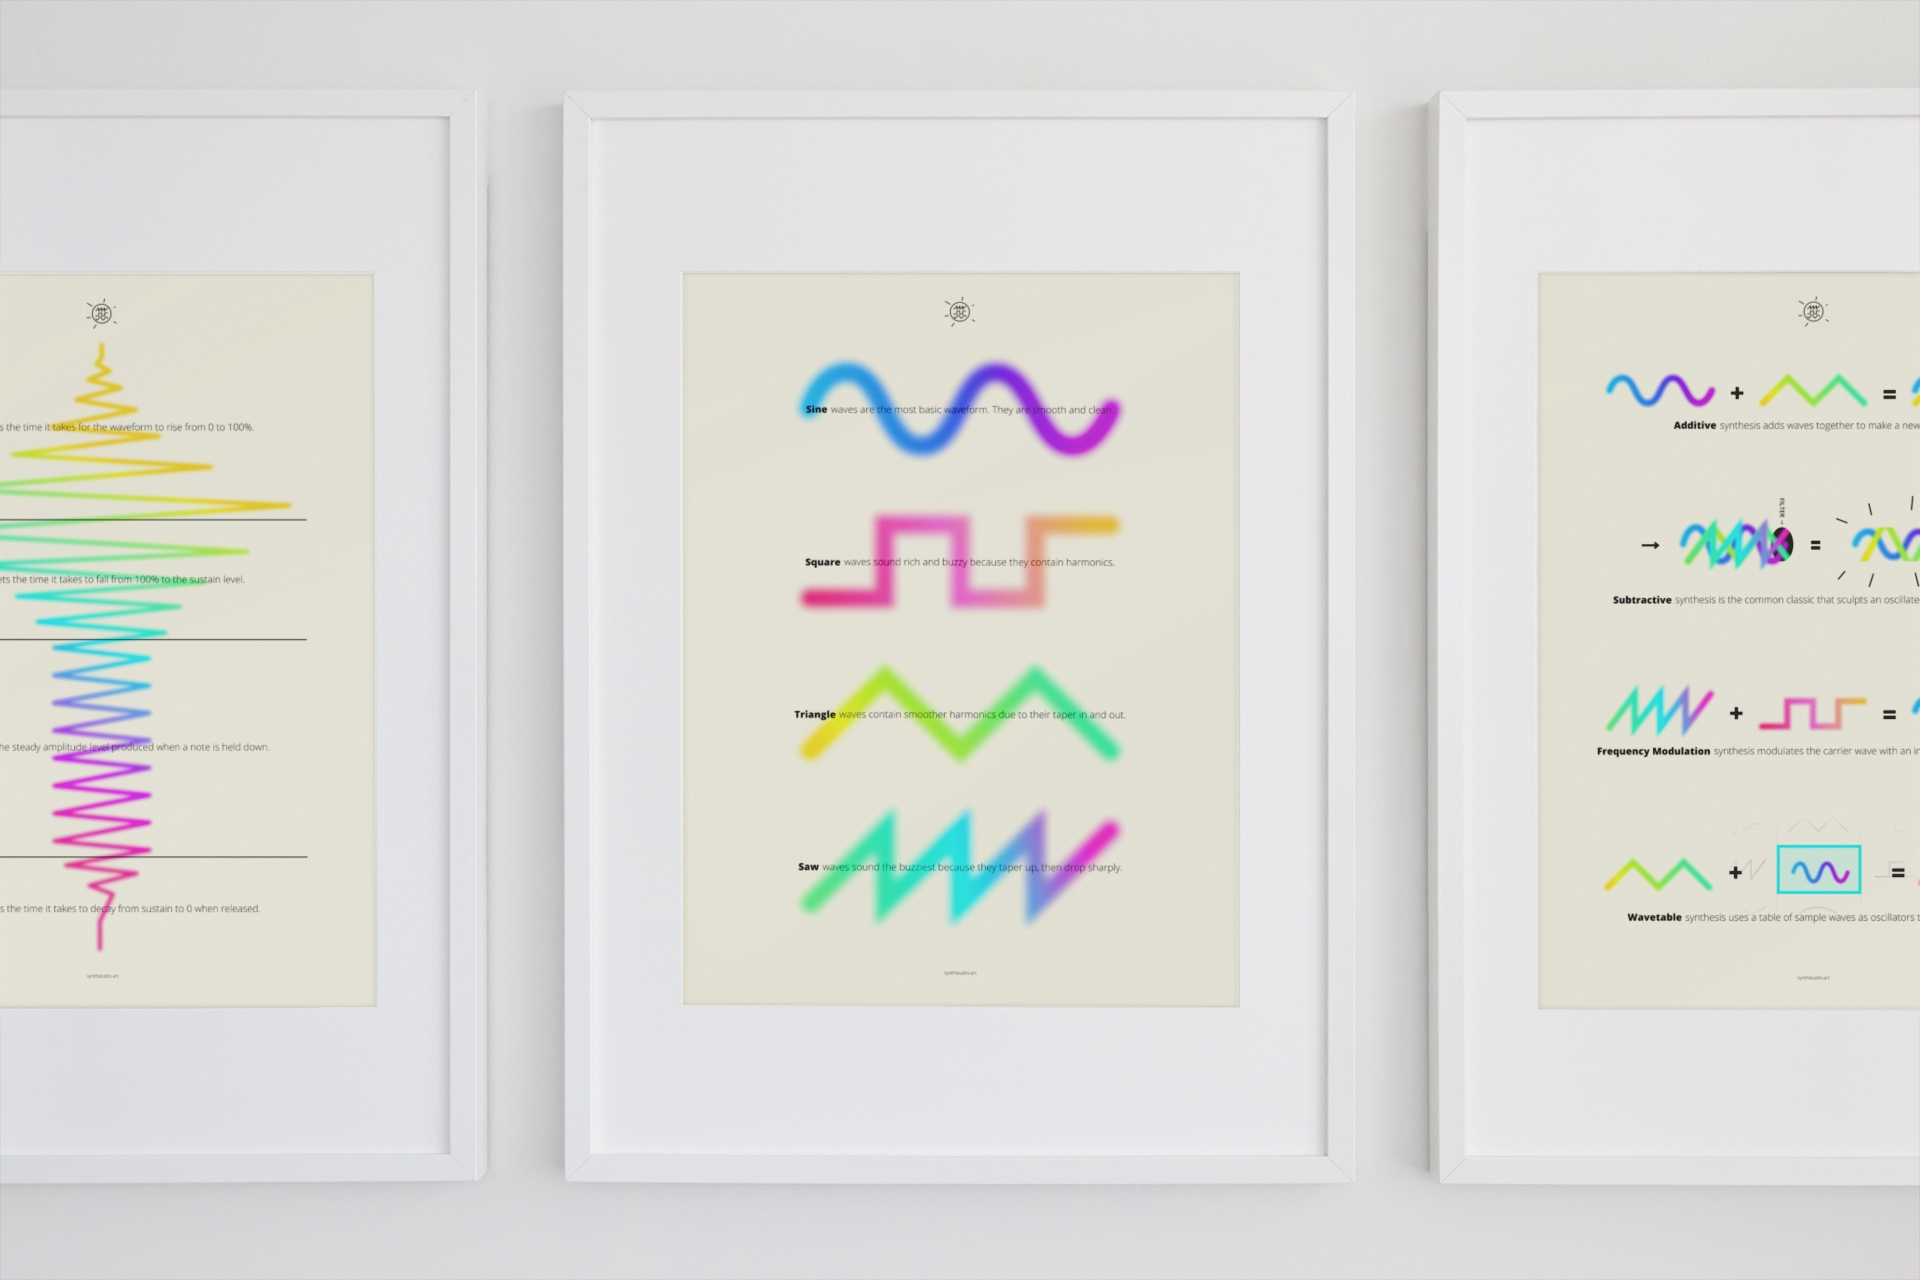 A photograph of three poster designs hanging on a wall